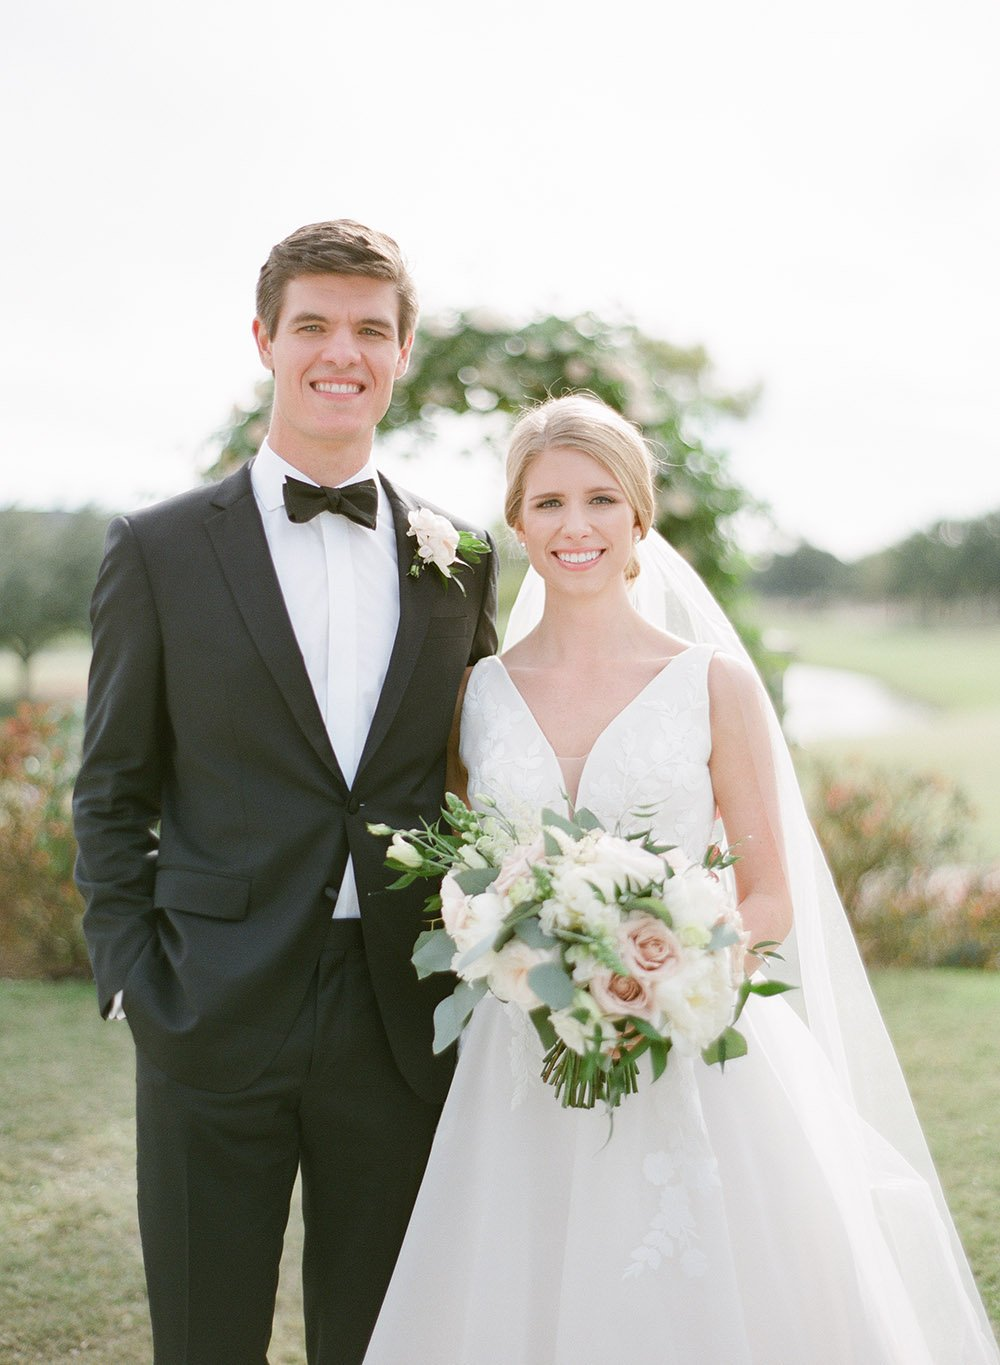 Bride and groom in an ethereal, classic, and elegant blush wedding.